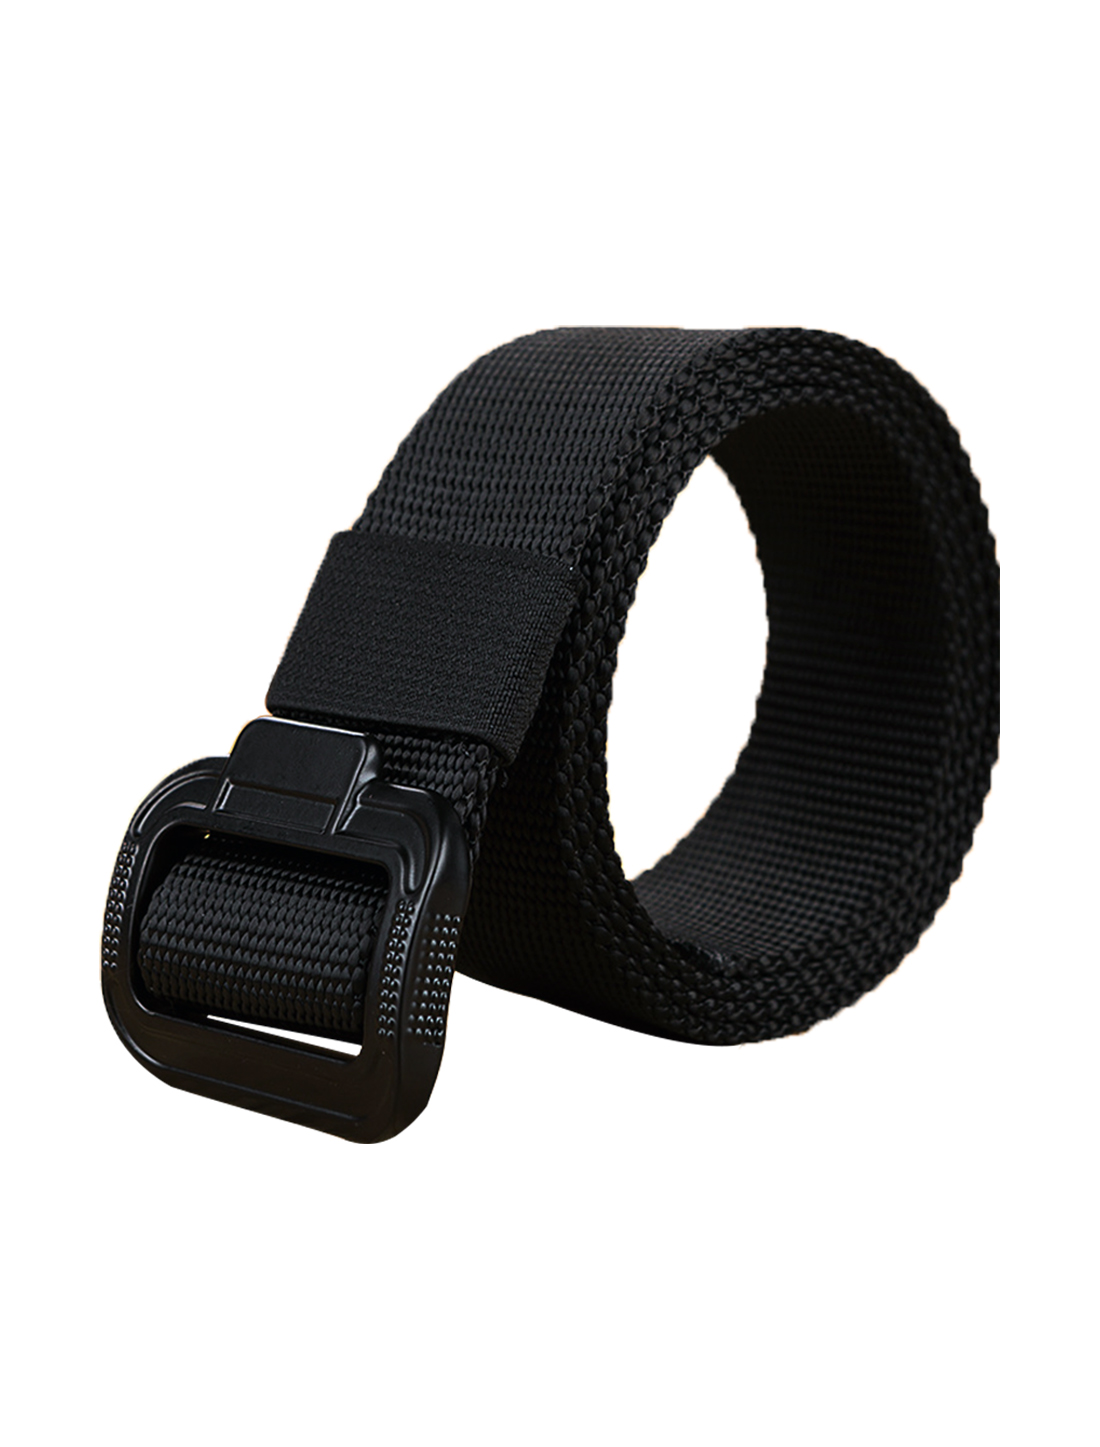 "Men Military Style Canvas Outdoor No Hole Slide Buckle Belt 1 5/8"" Black"